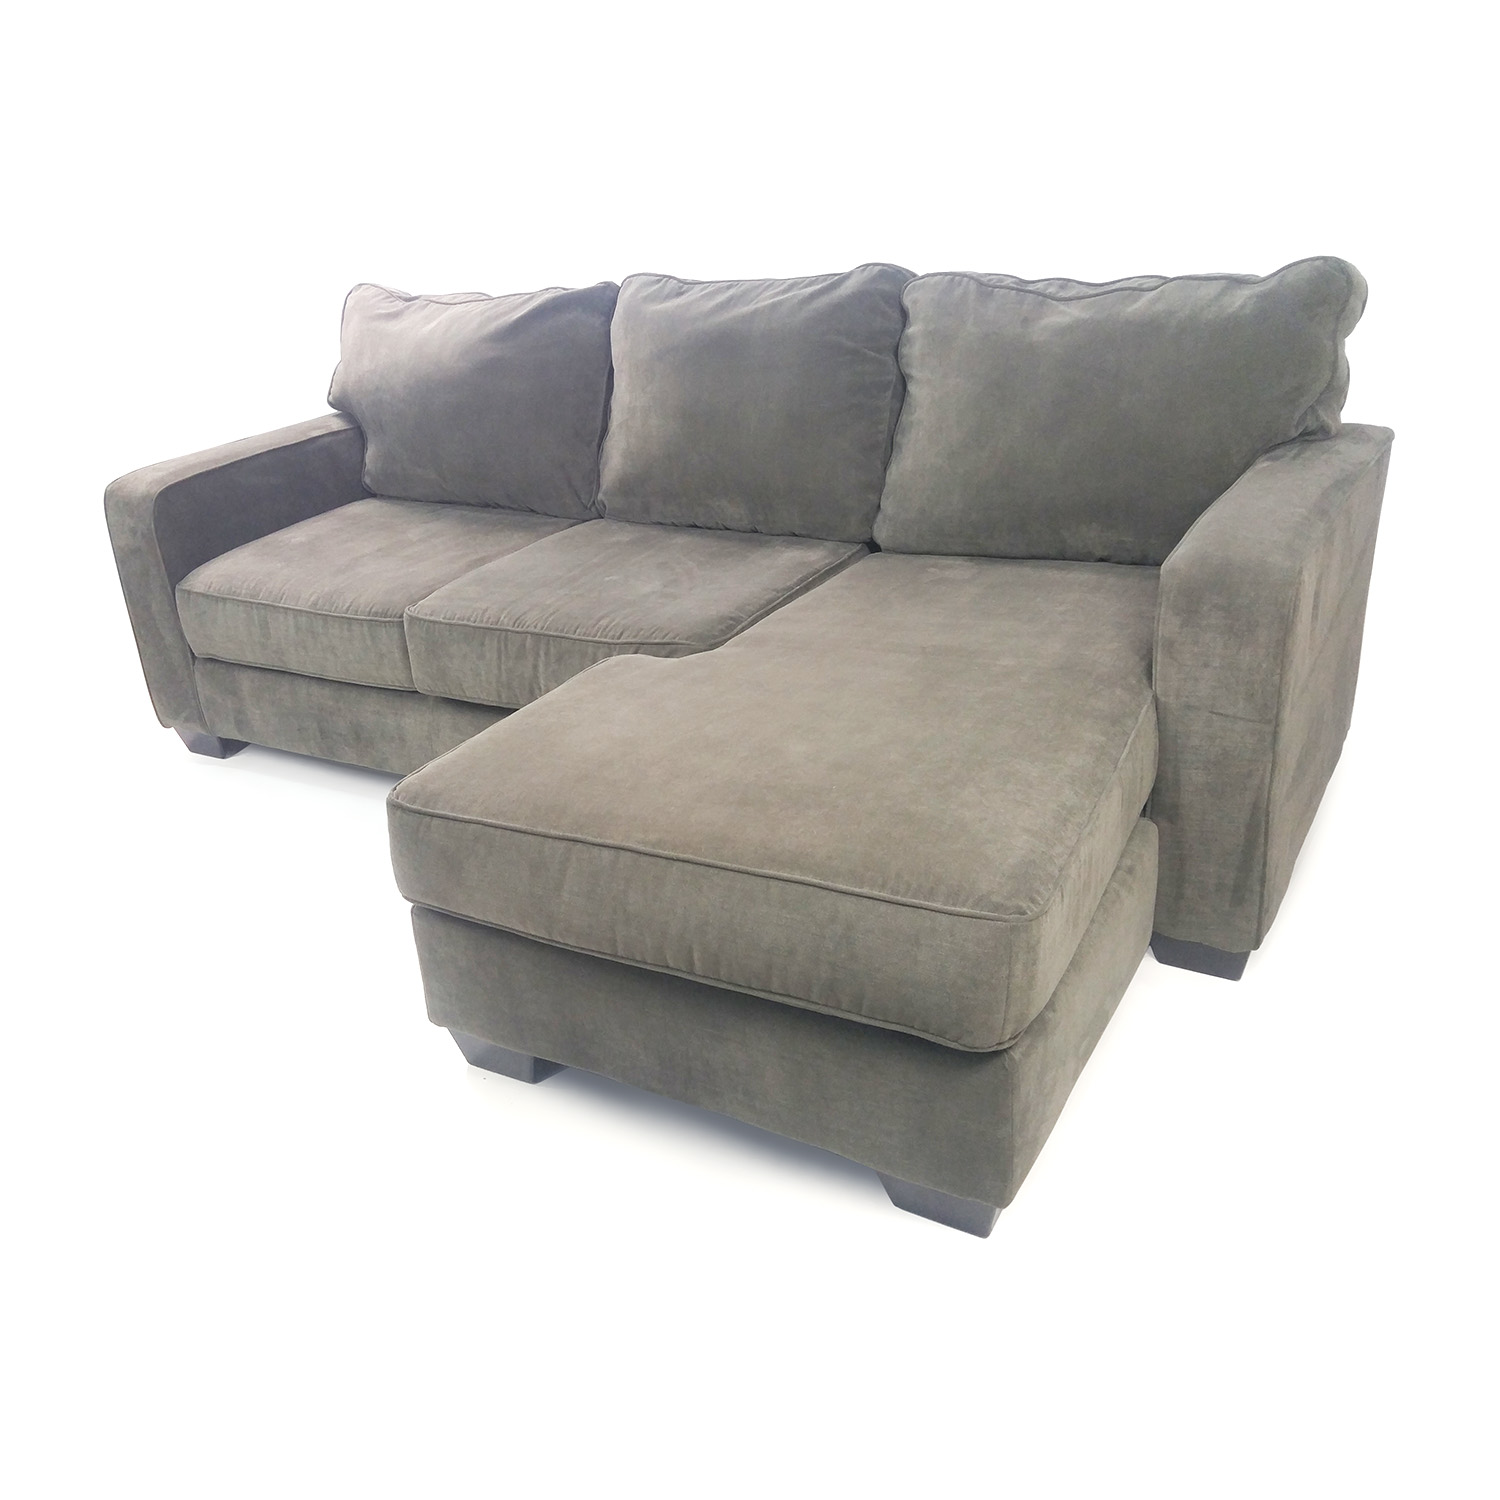 Hodan sofa chaise hodan marble sofa chaise signature for Ashley sofa chaise